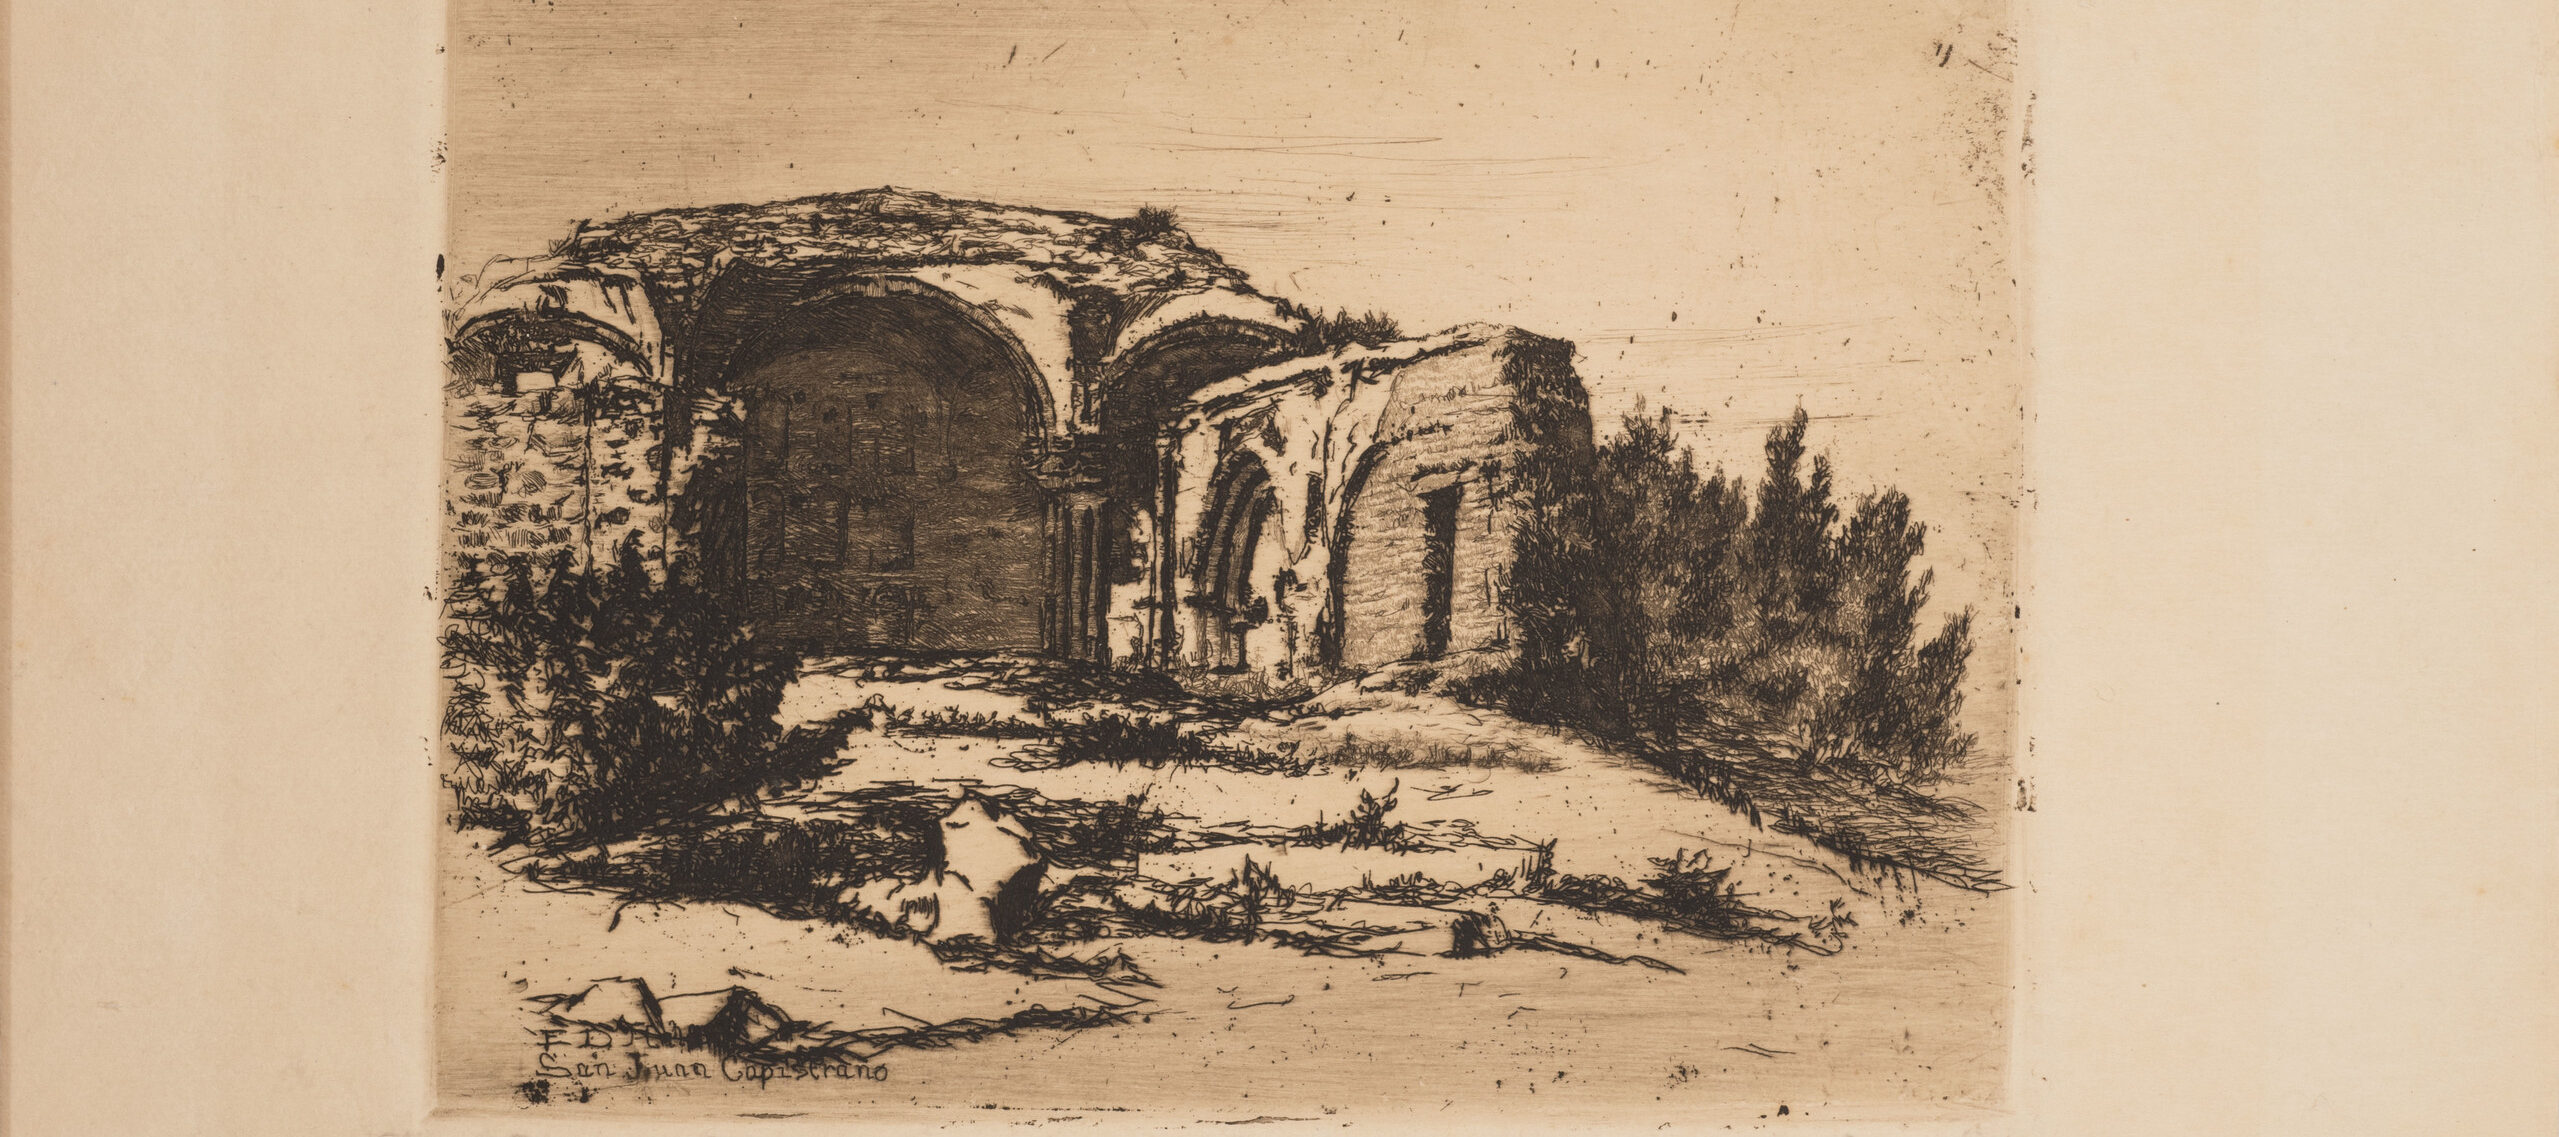 Small print of black ink on ecru paper depicting the ruins of an old Catholic mission building. The building, featuring rounded arches, crumbling facades, and exposed brick, is surrounded by scrub bushes and desert landscape.